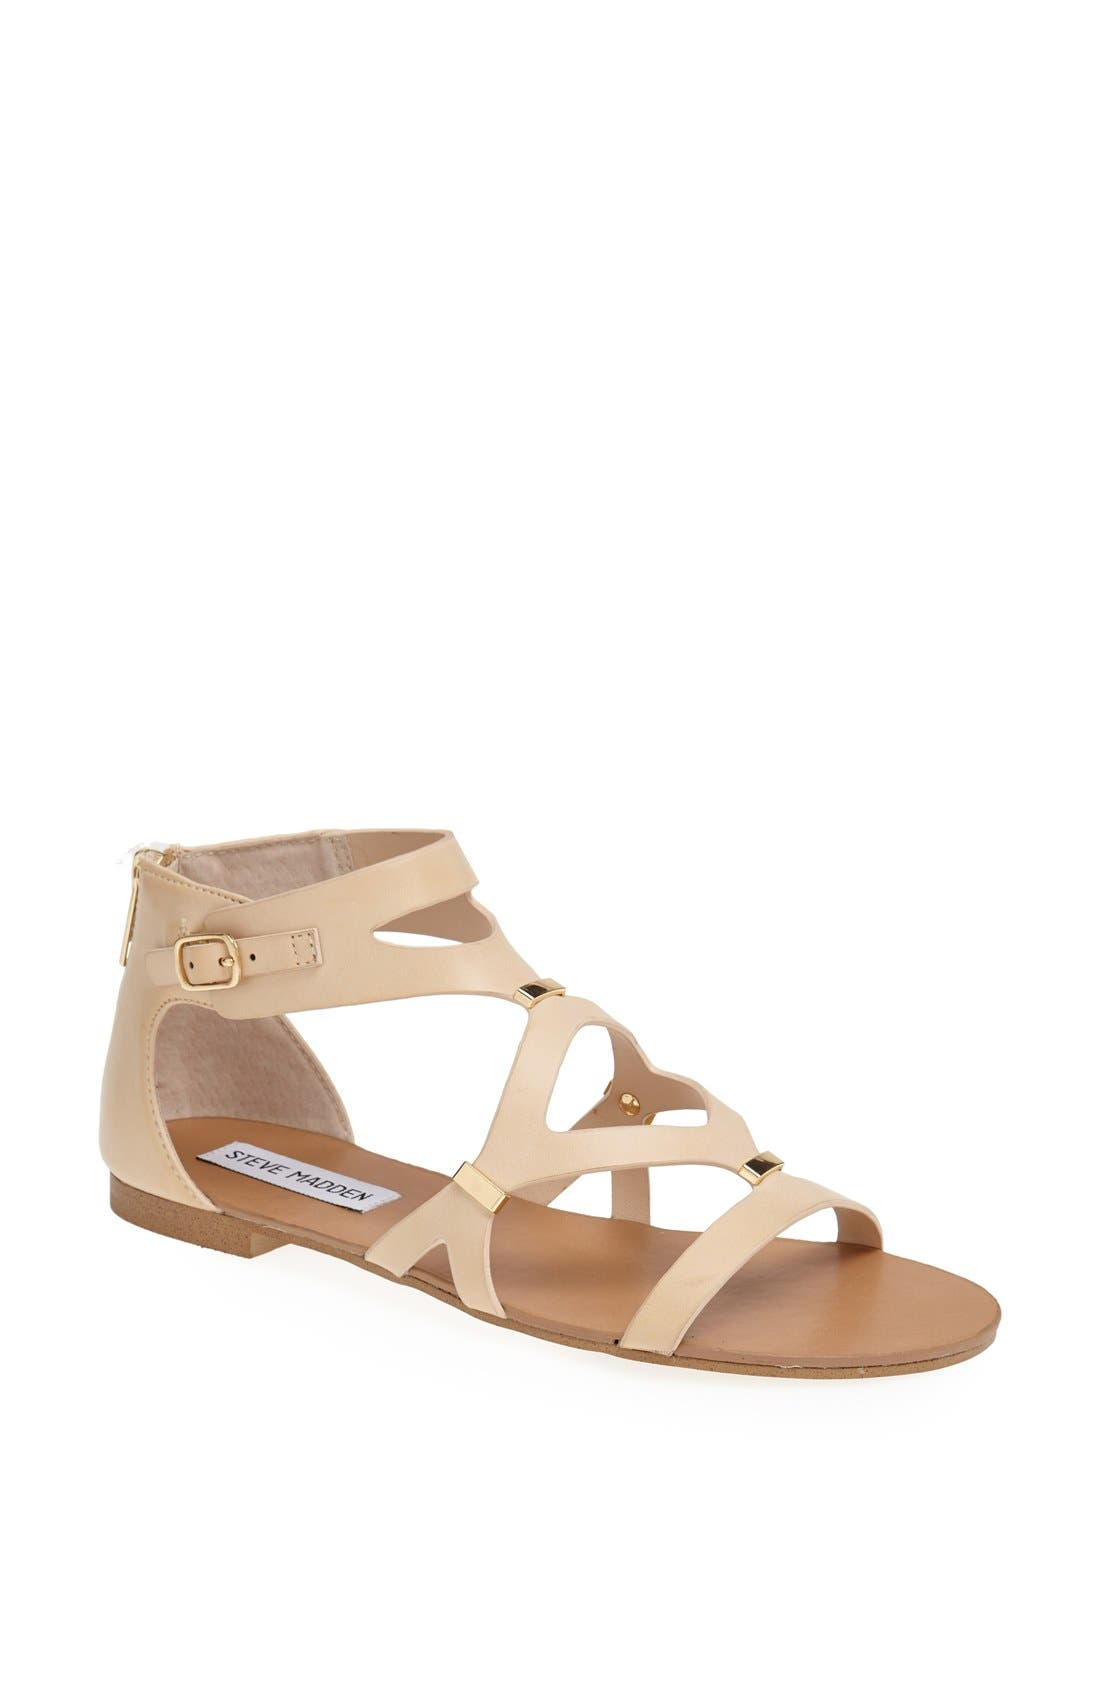 Alternate Image 1 Selected - Steve Madden 'Comma' Sandal